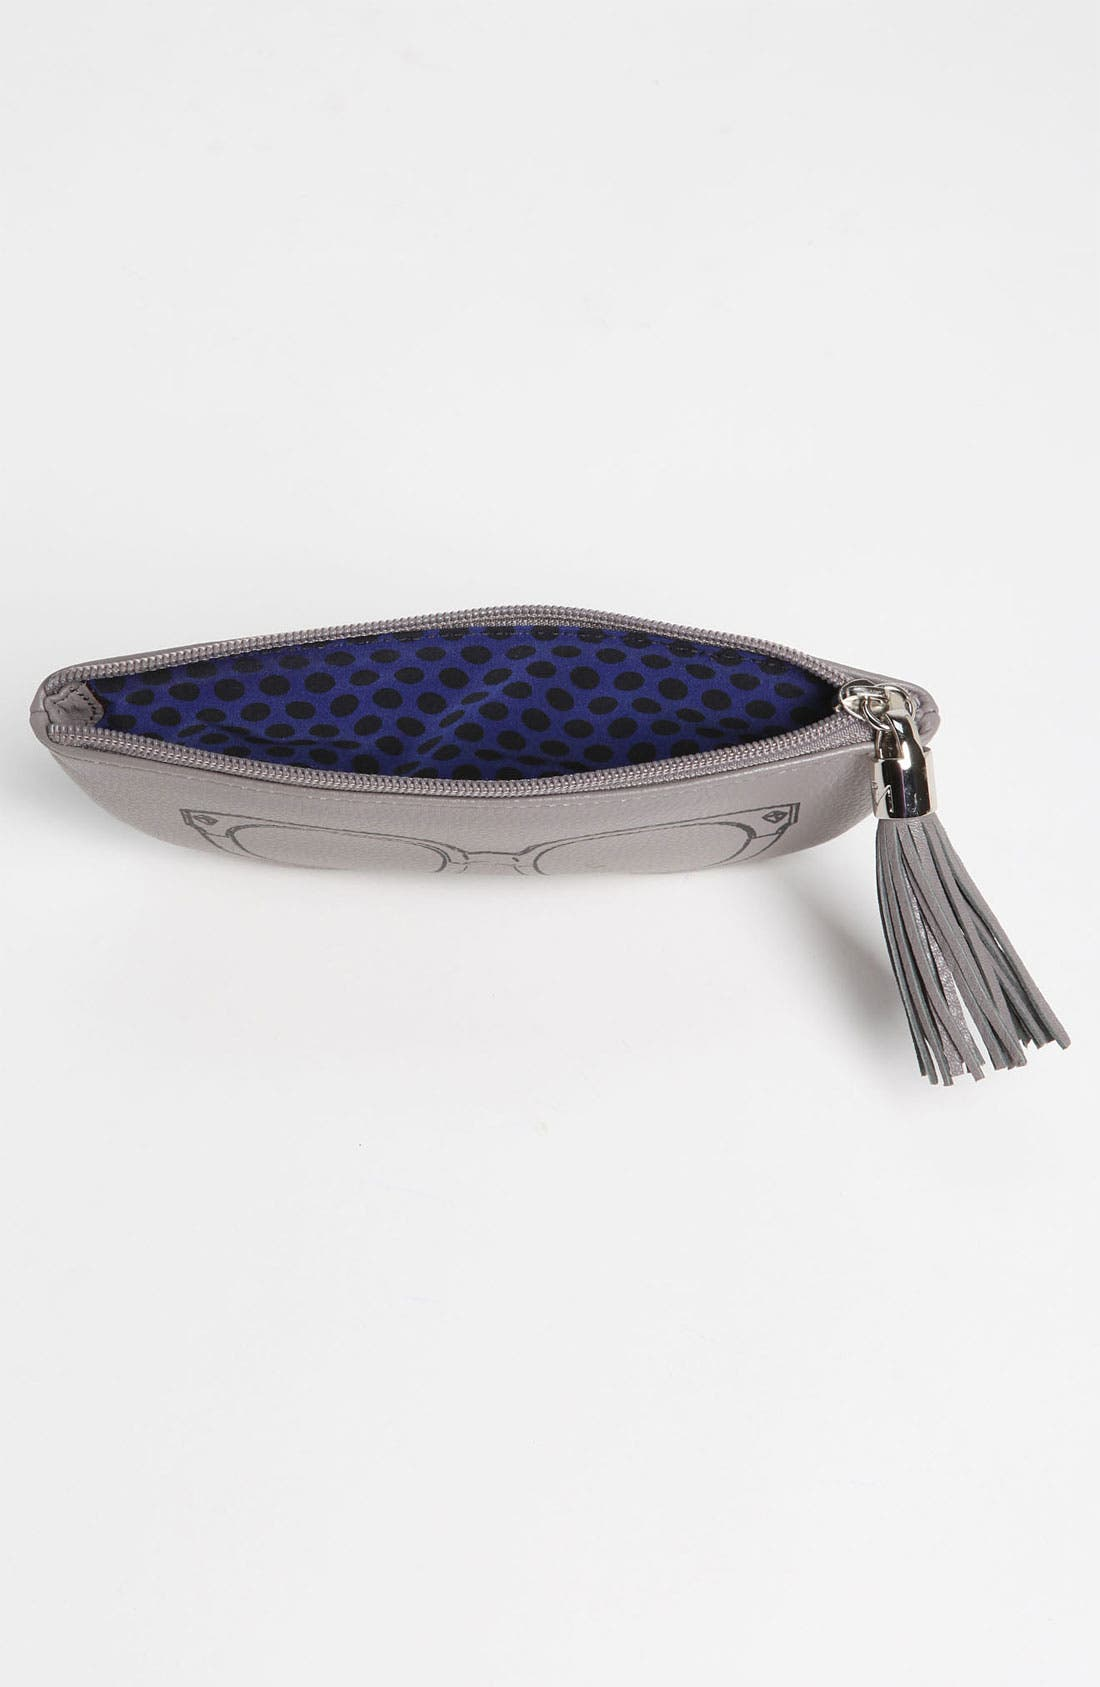 Alternate Image 3  - Rebecca Minkoff Leather Sunglasses Case